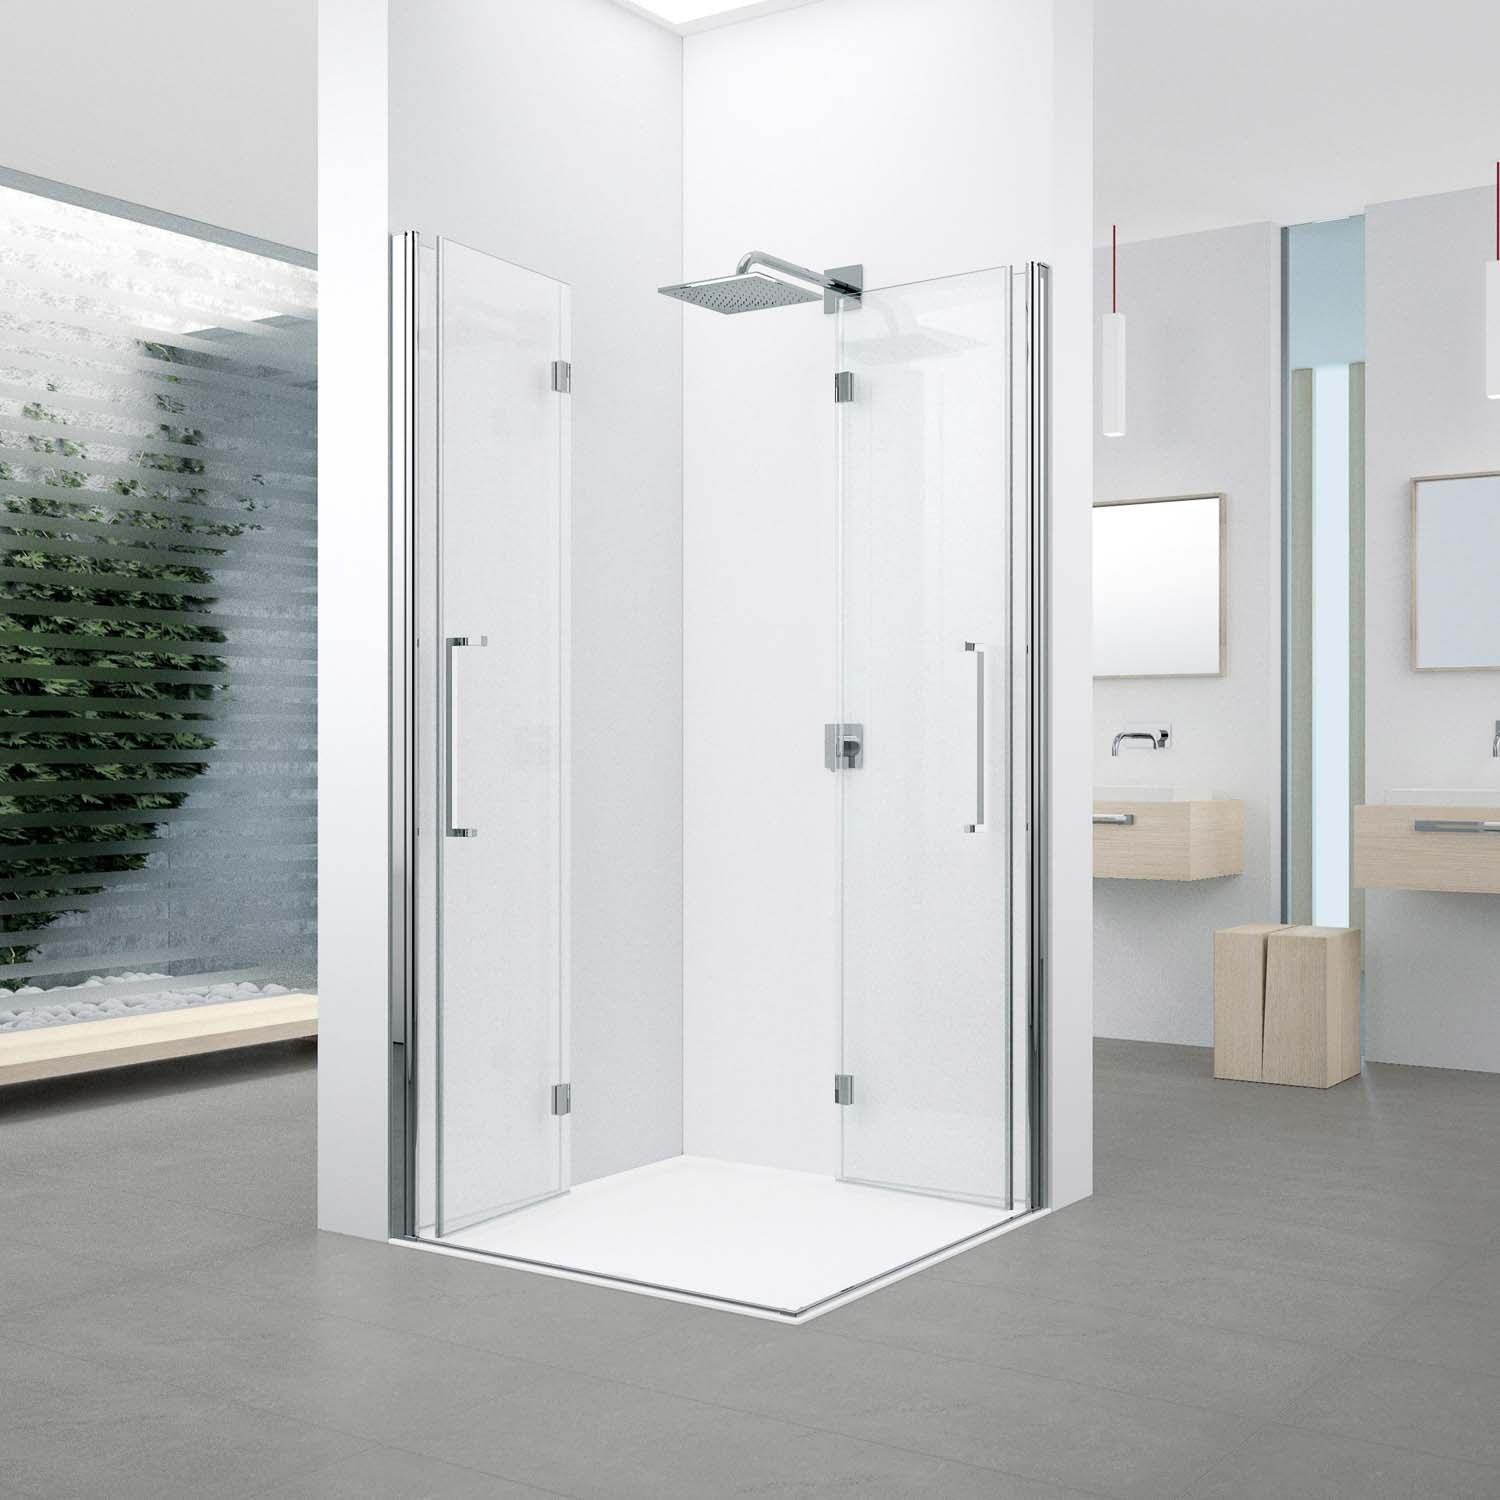 590-610mm Bliss Bi-folding Screen Frosted Glass with a chrome finish lifestyle image